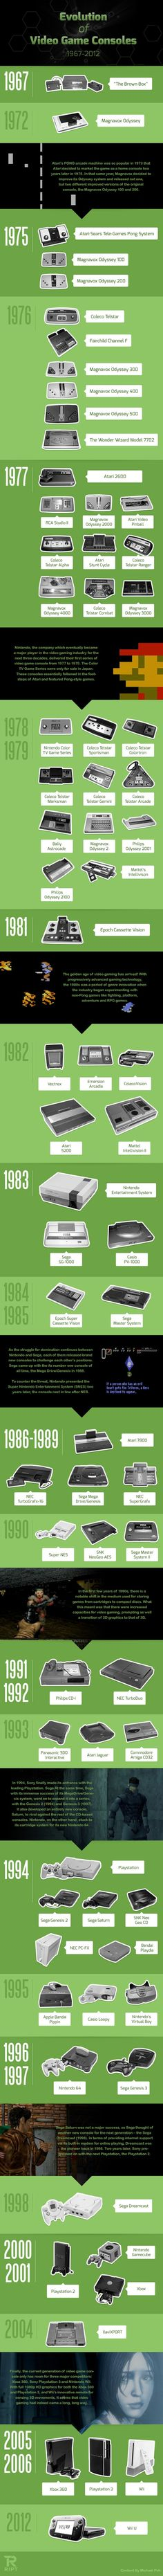 Evolution of the Video Game Console (Infographic)